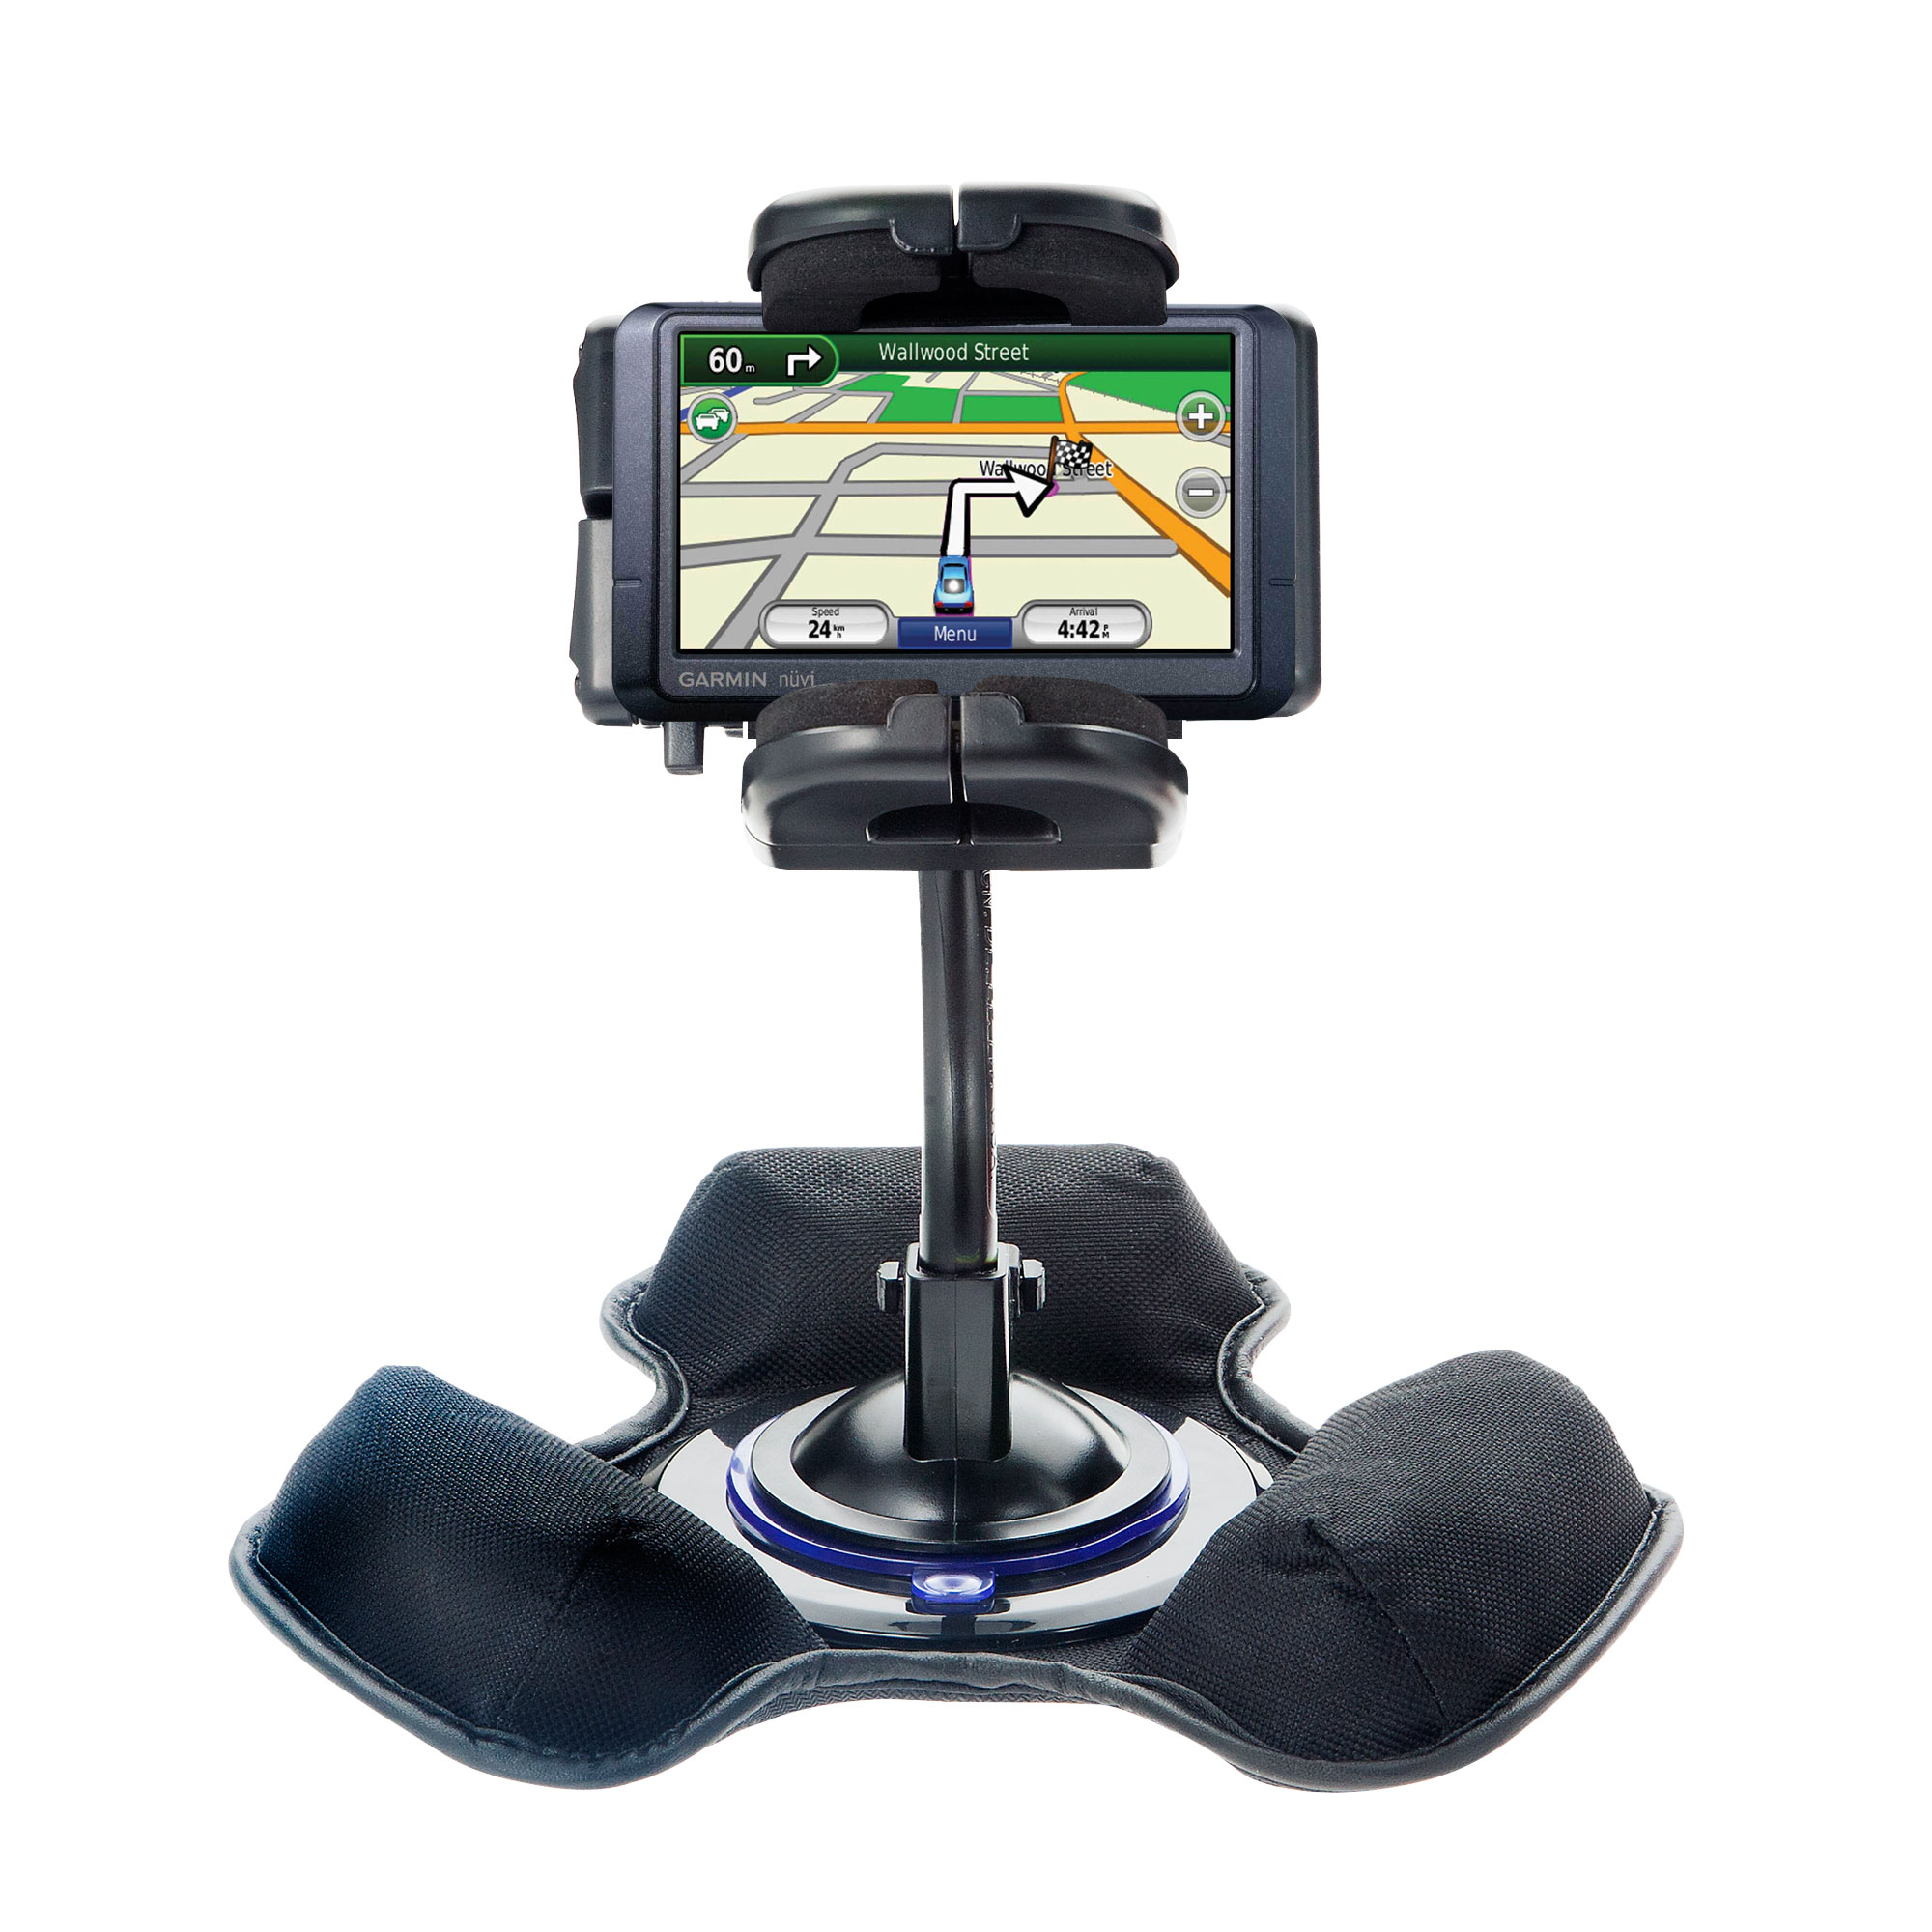 Dash and Windshield Holder compatible with the Garmin Nuvi 255